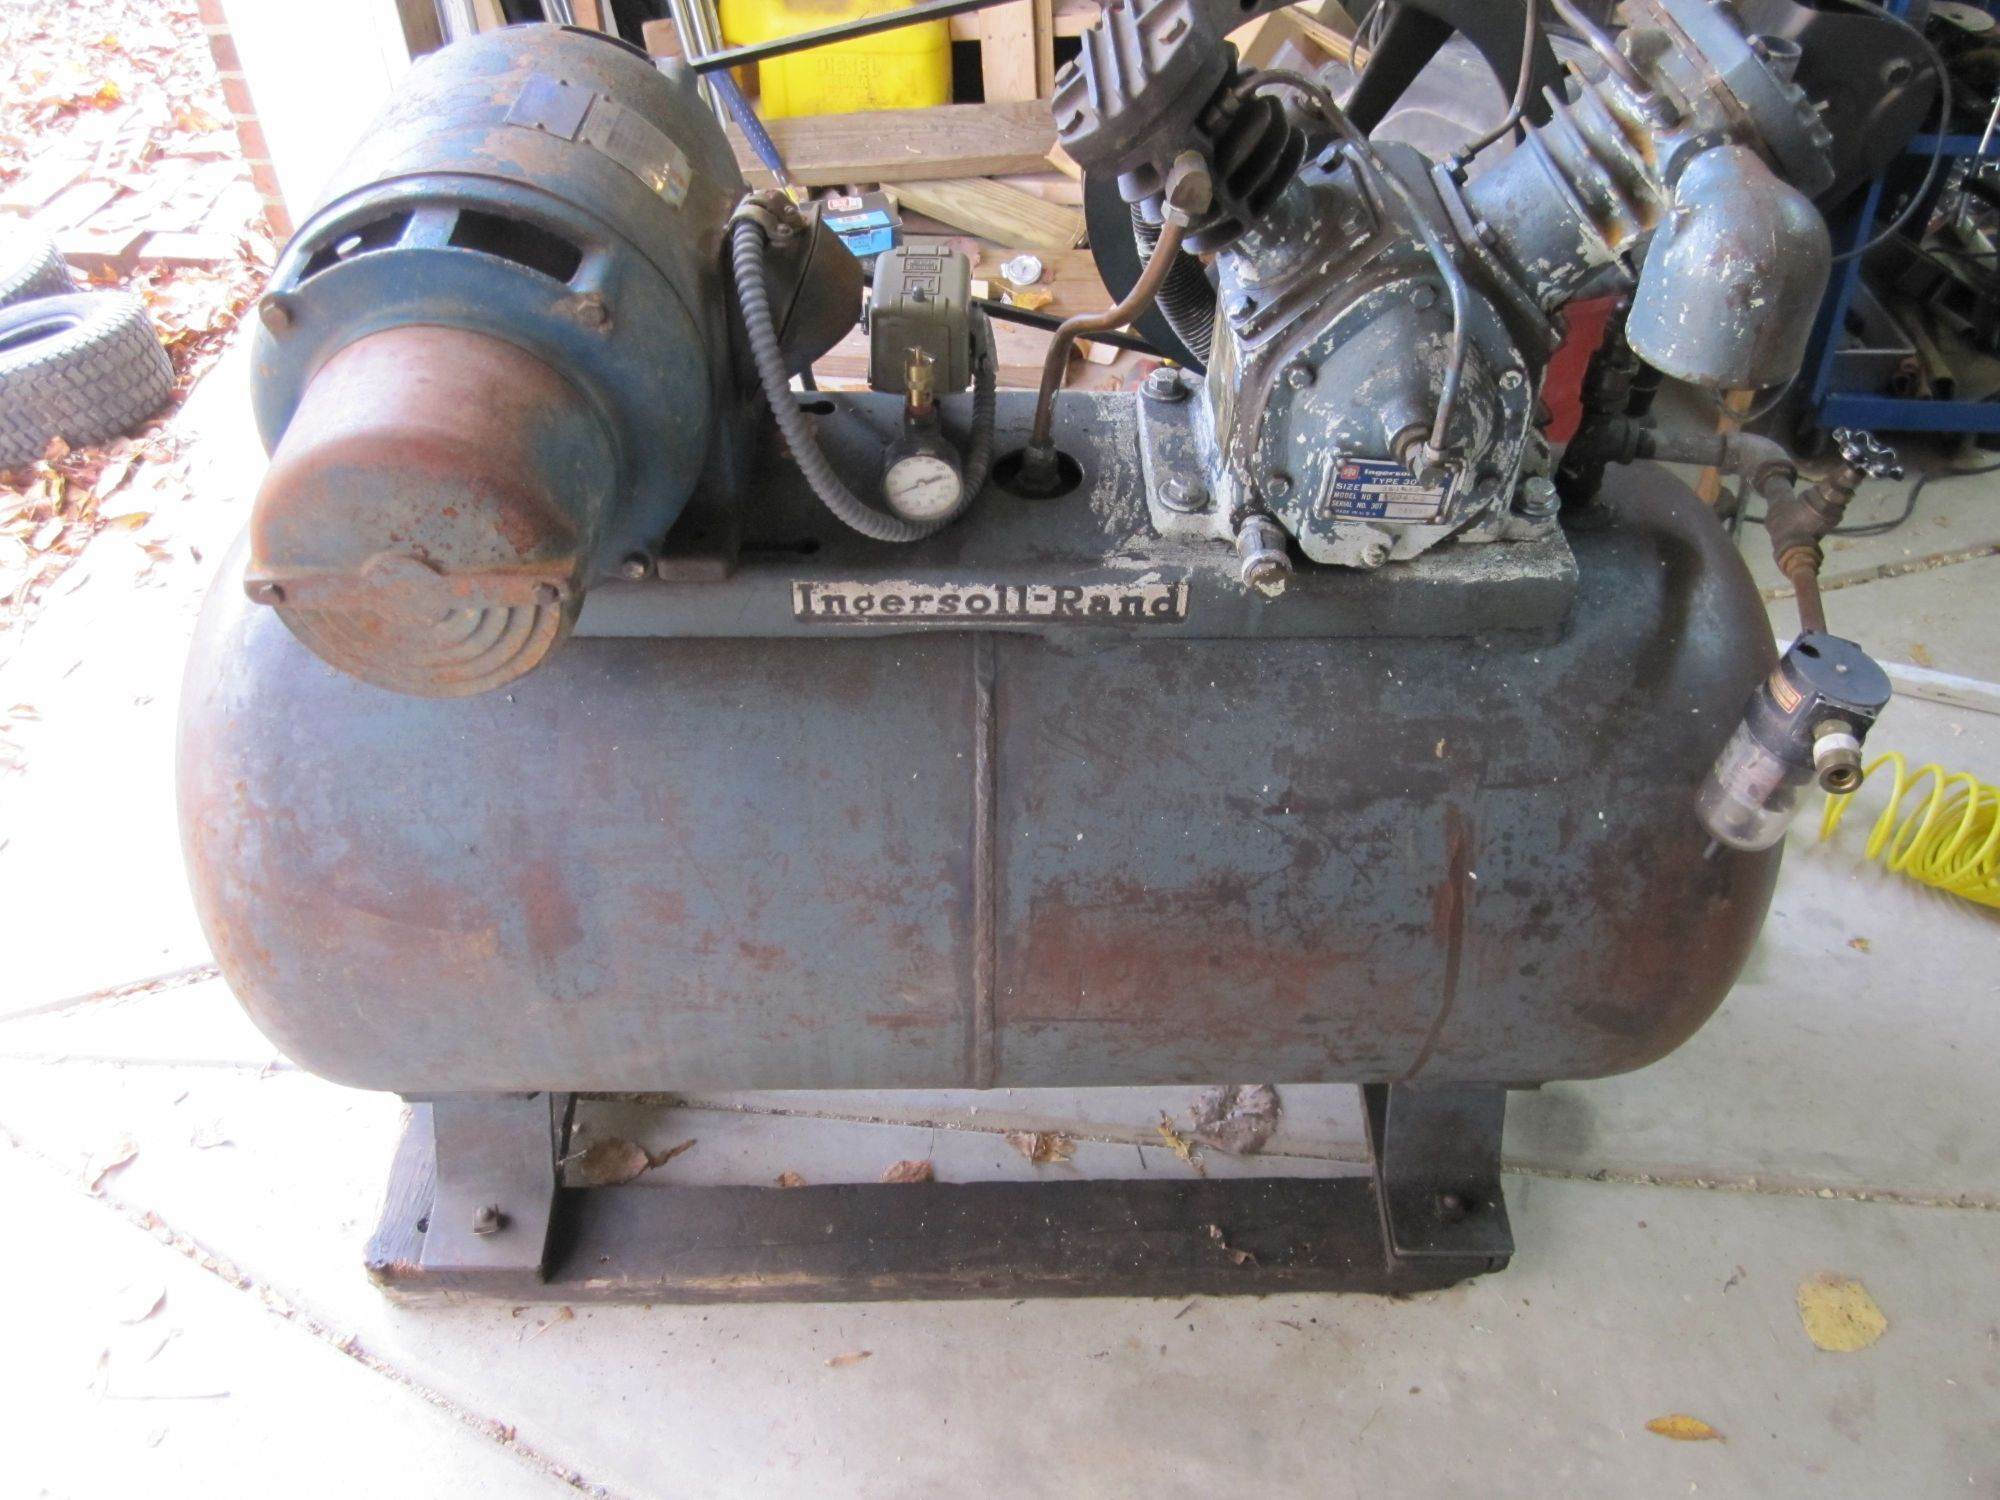 hight resolution of search by product number and find exactly the ingersoll rand t30 compressor parts you need with confidence 253 elliott road unit 14 henderson nevada 89011